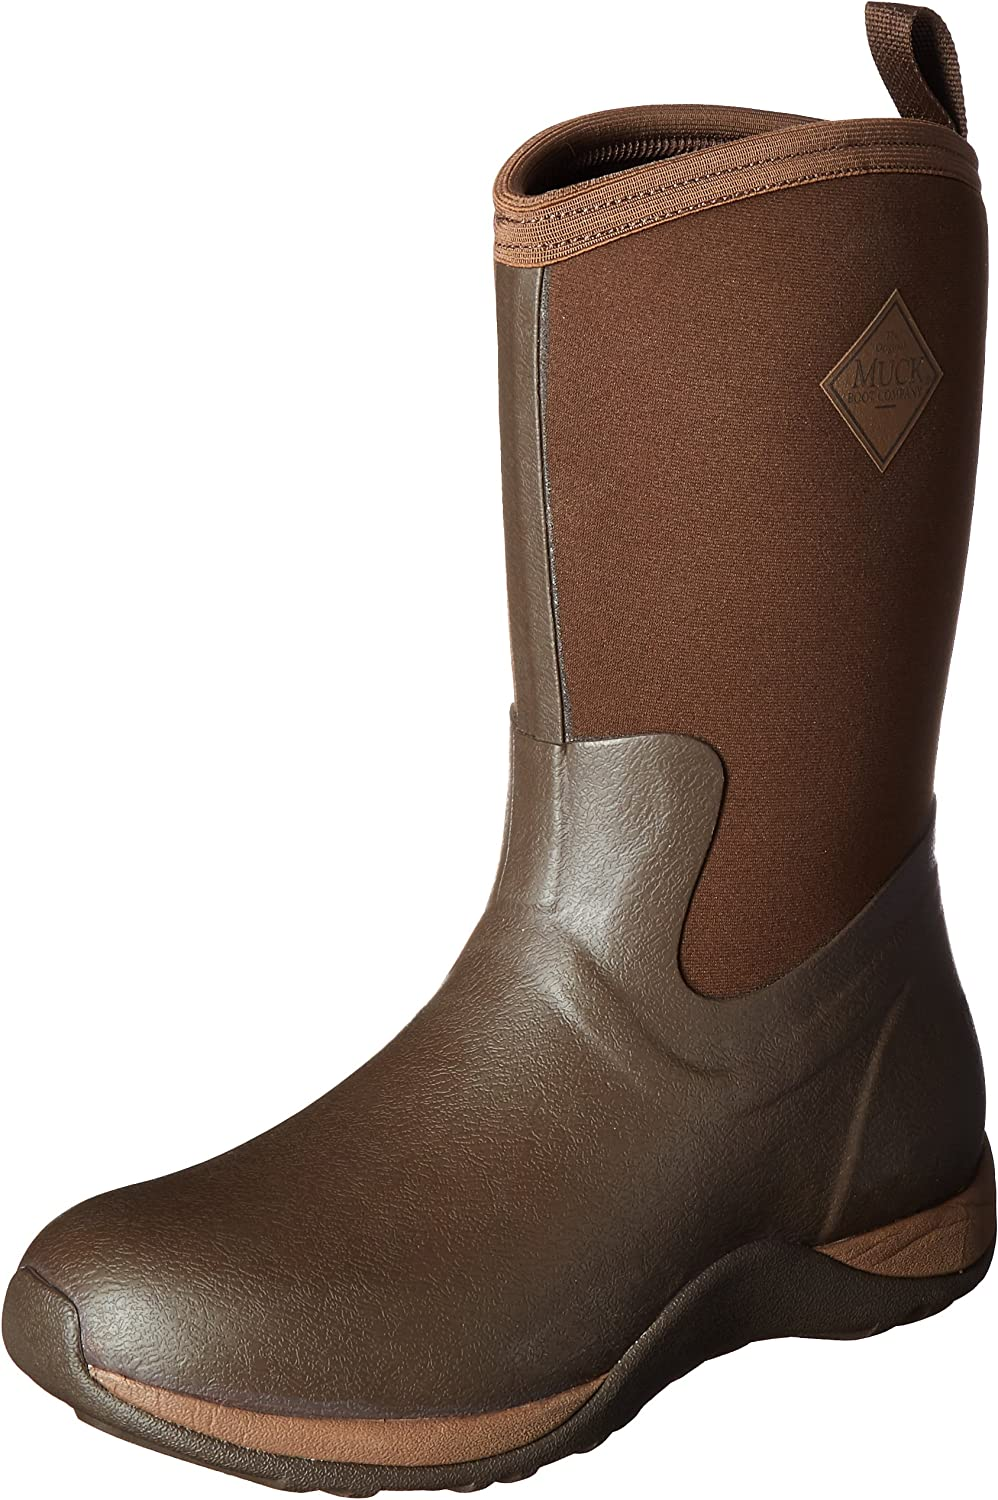 Muck Boot Women's Artic Weekend Snow Boot